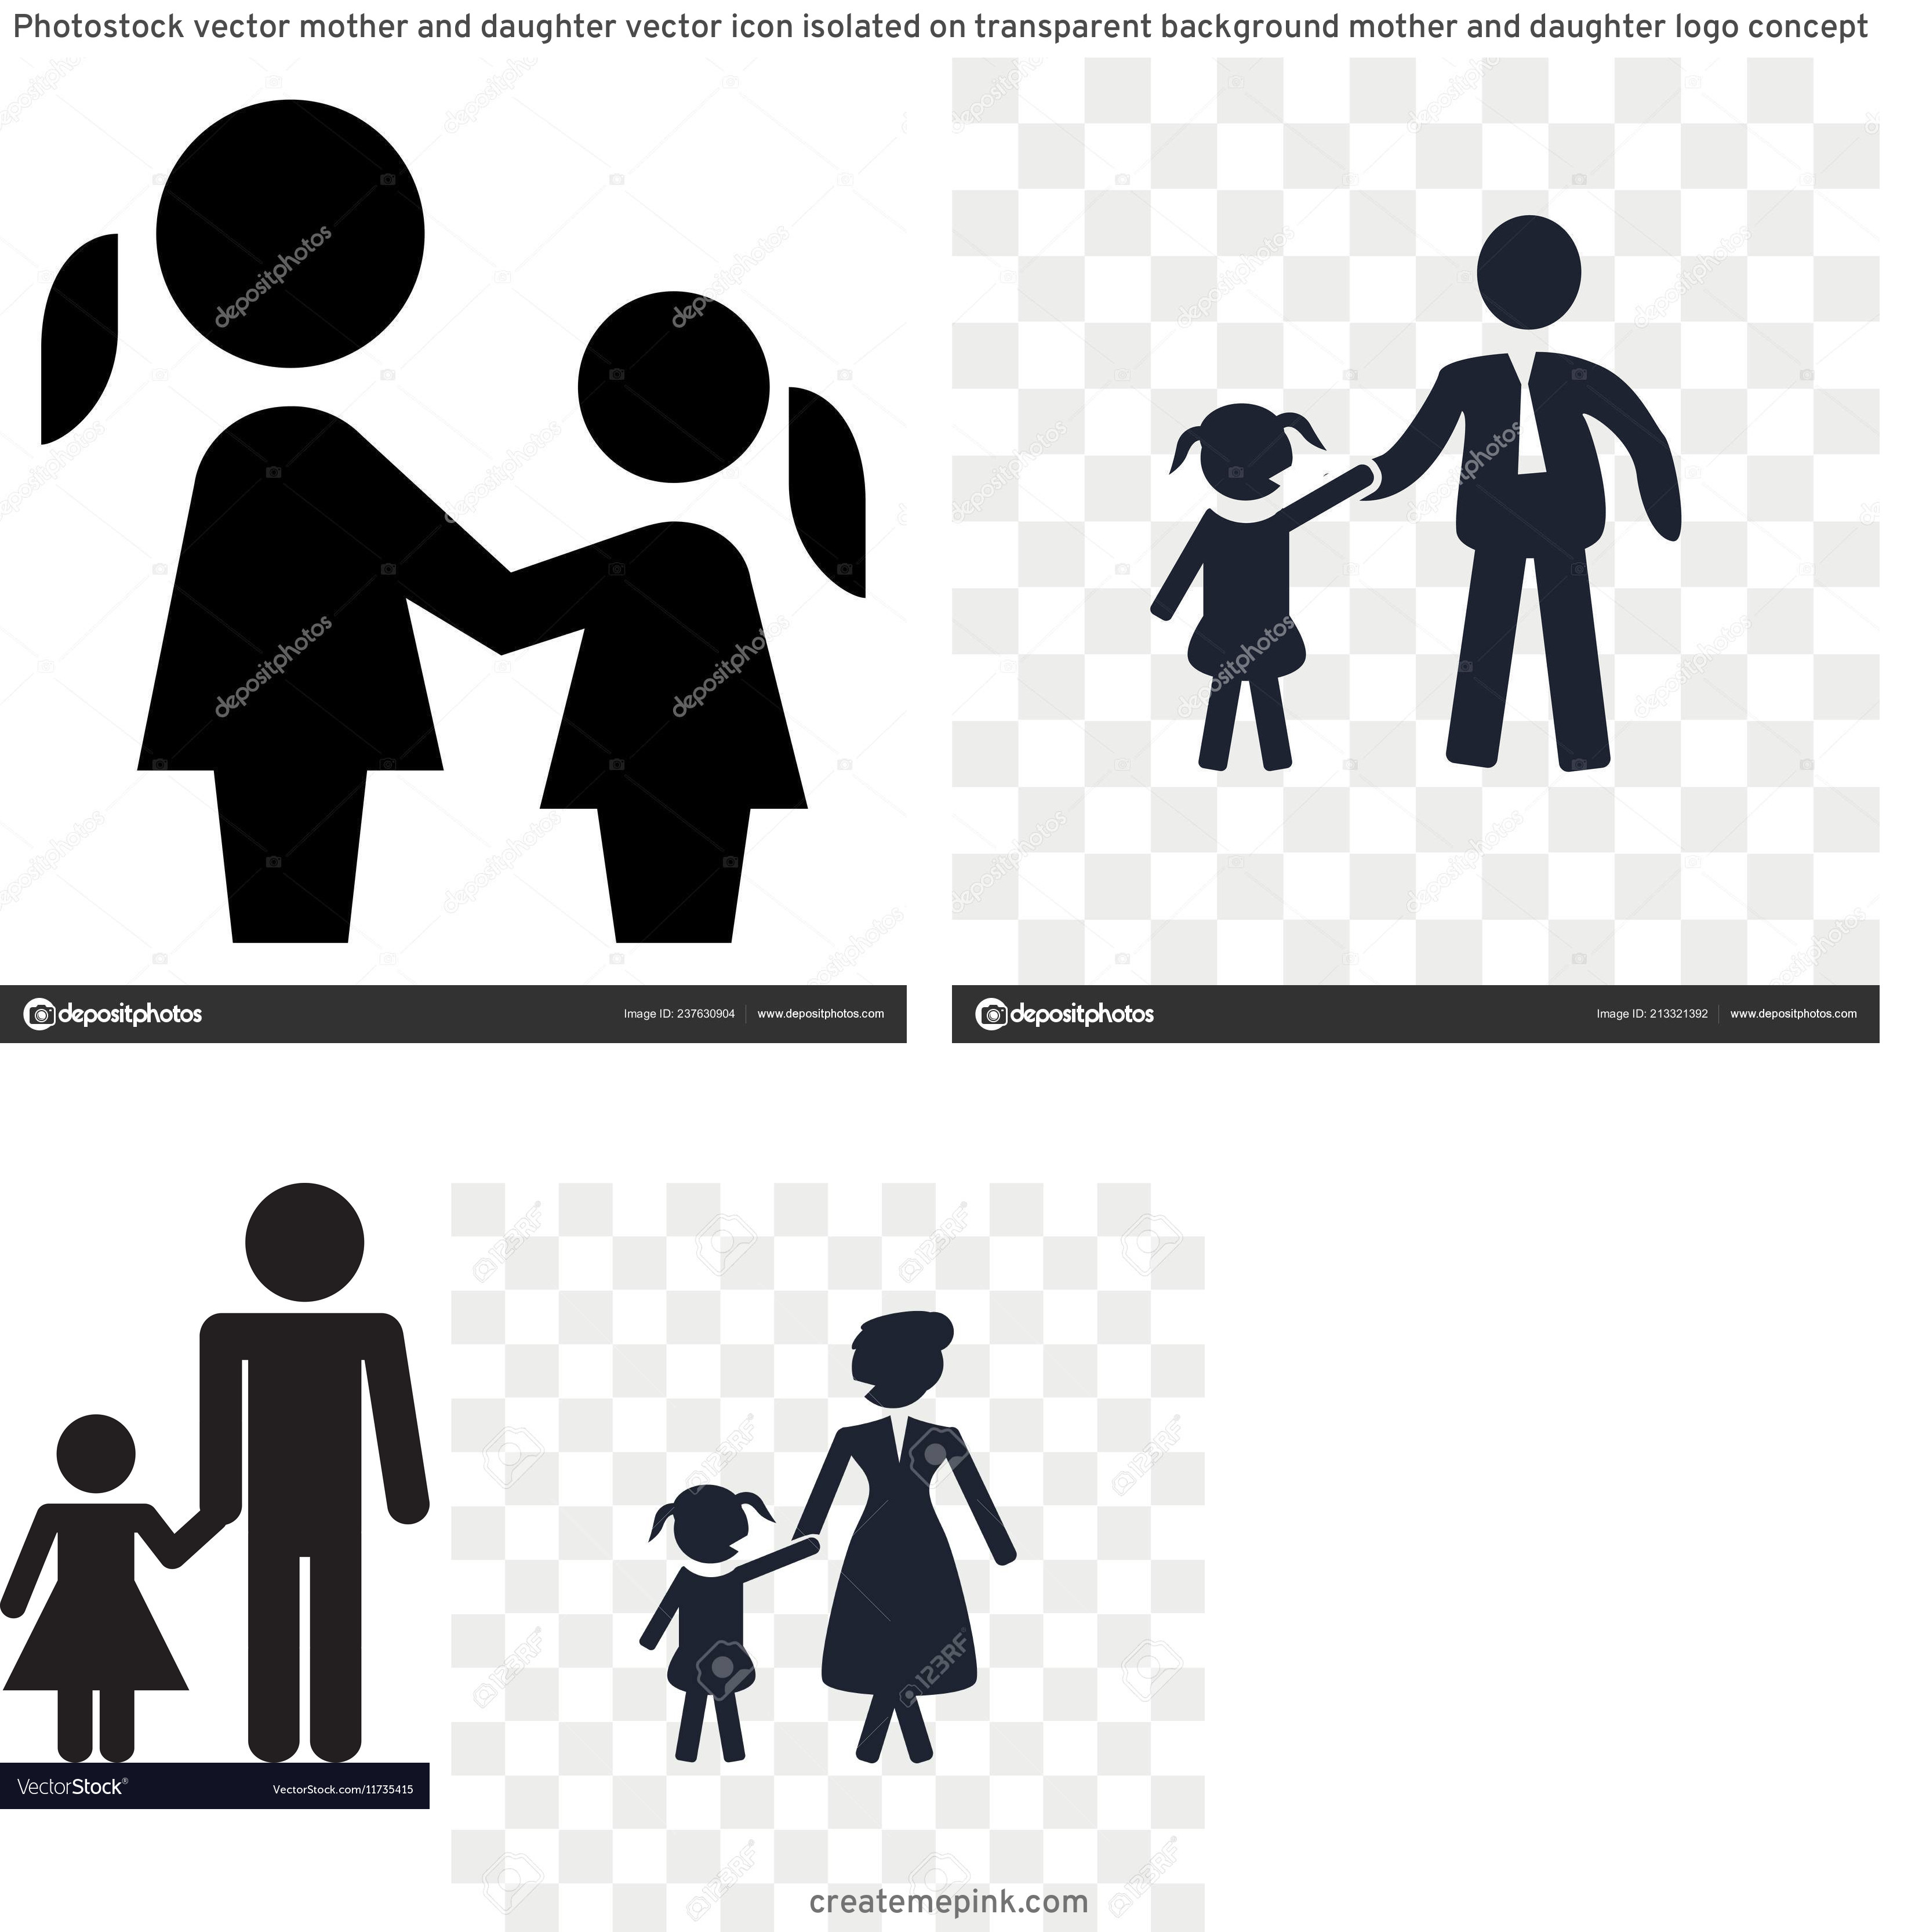 Daughter Vector Icons: Photostock Vector Mother And Daughter Vector Icon Isolated On Transparent Background Mother And Daughter Logo Concept